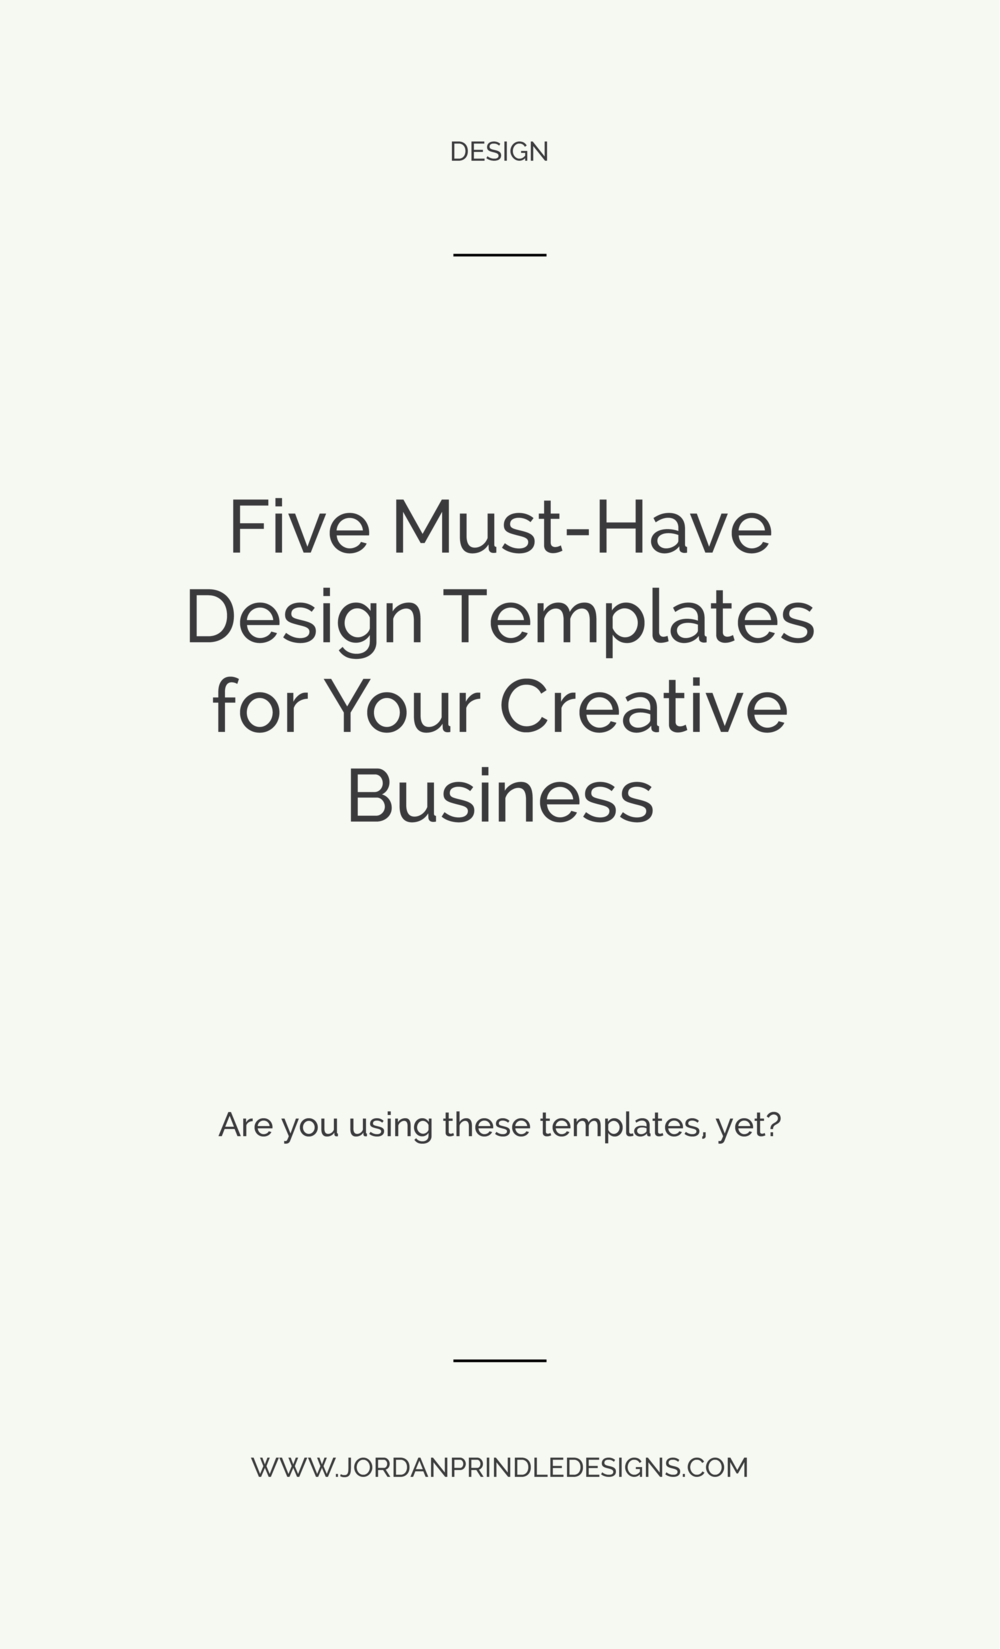 Five Must-Have Design Templates for Your Creative Business | If you're using social media or blogging, you'll want to check out this blog post at www.jordanprindledesigns.com #branddesign #designtemplates #logodesign